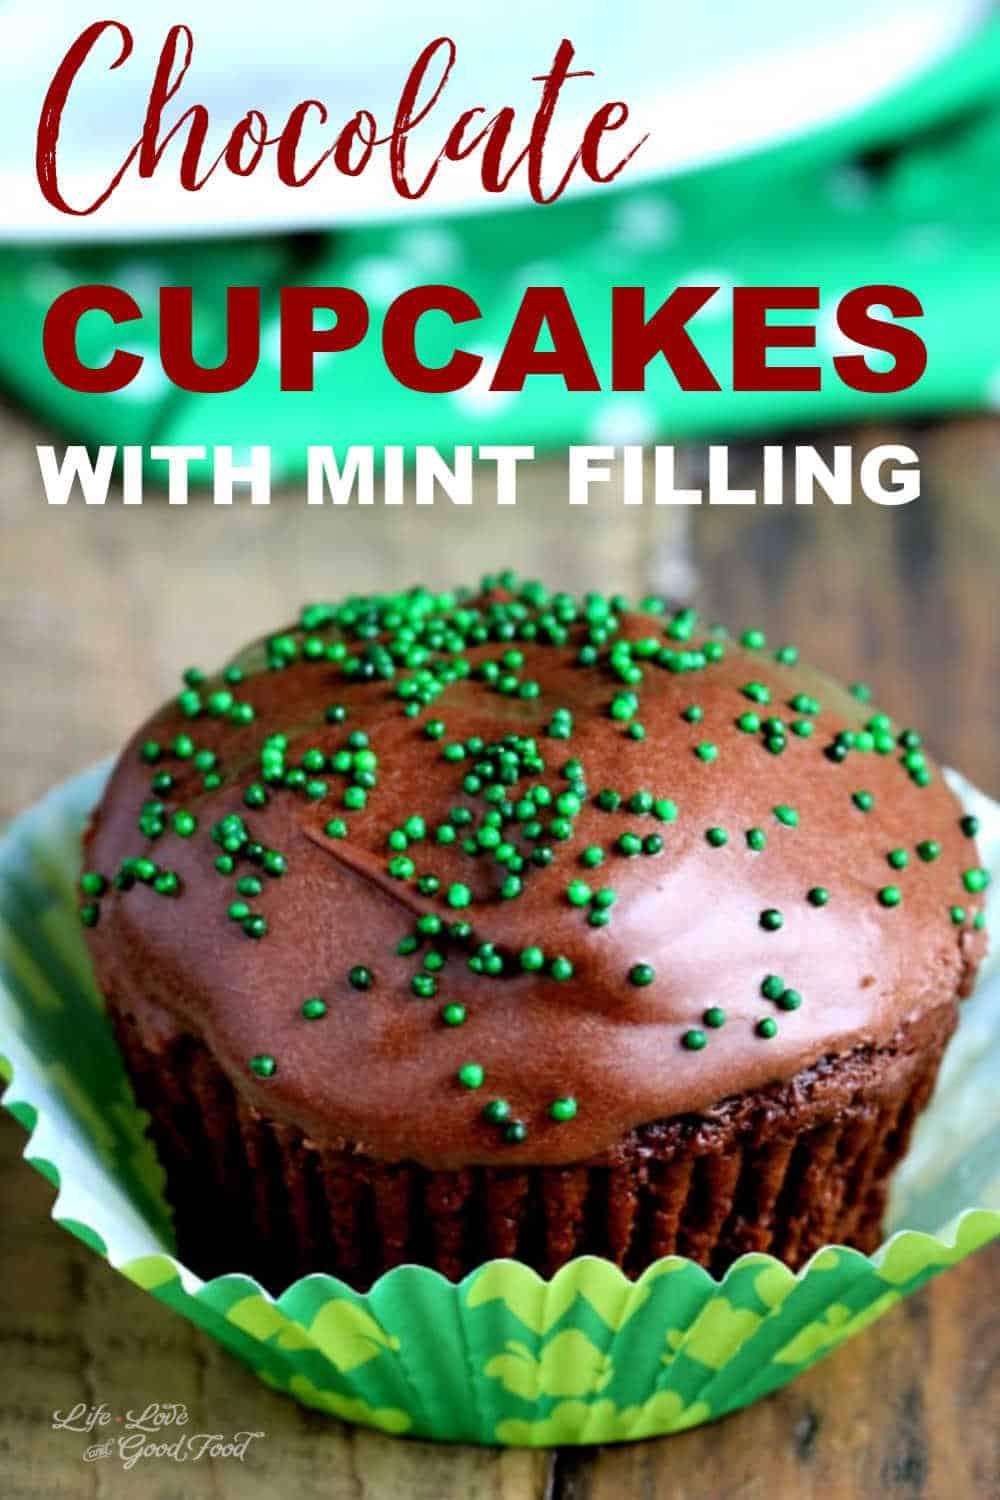 a Chocolate Cupcake with Mint Filling in a paper wrapper on a table